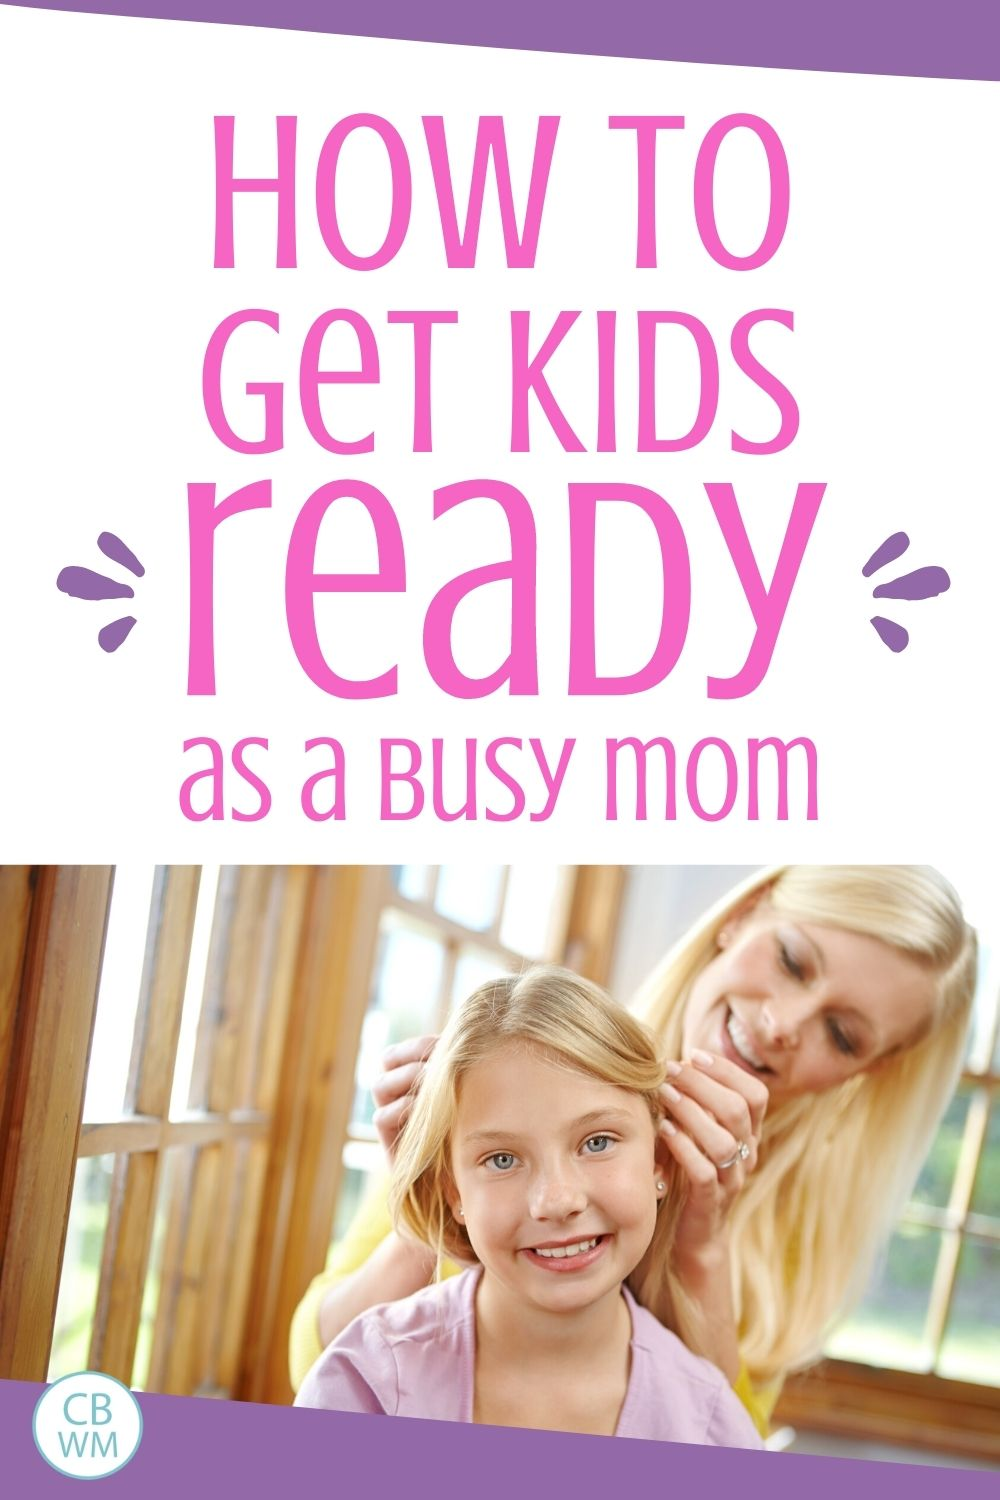 How to get kids ready as a busy mom